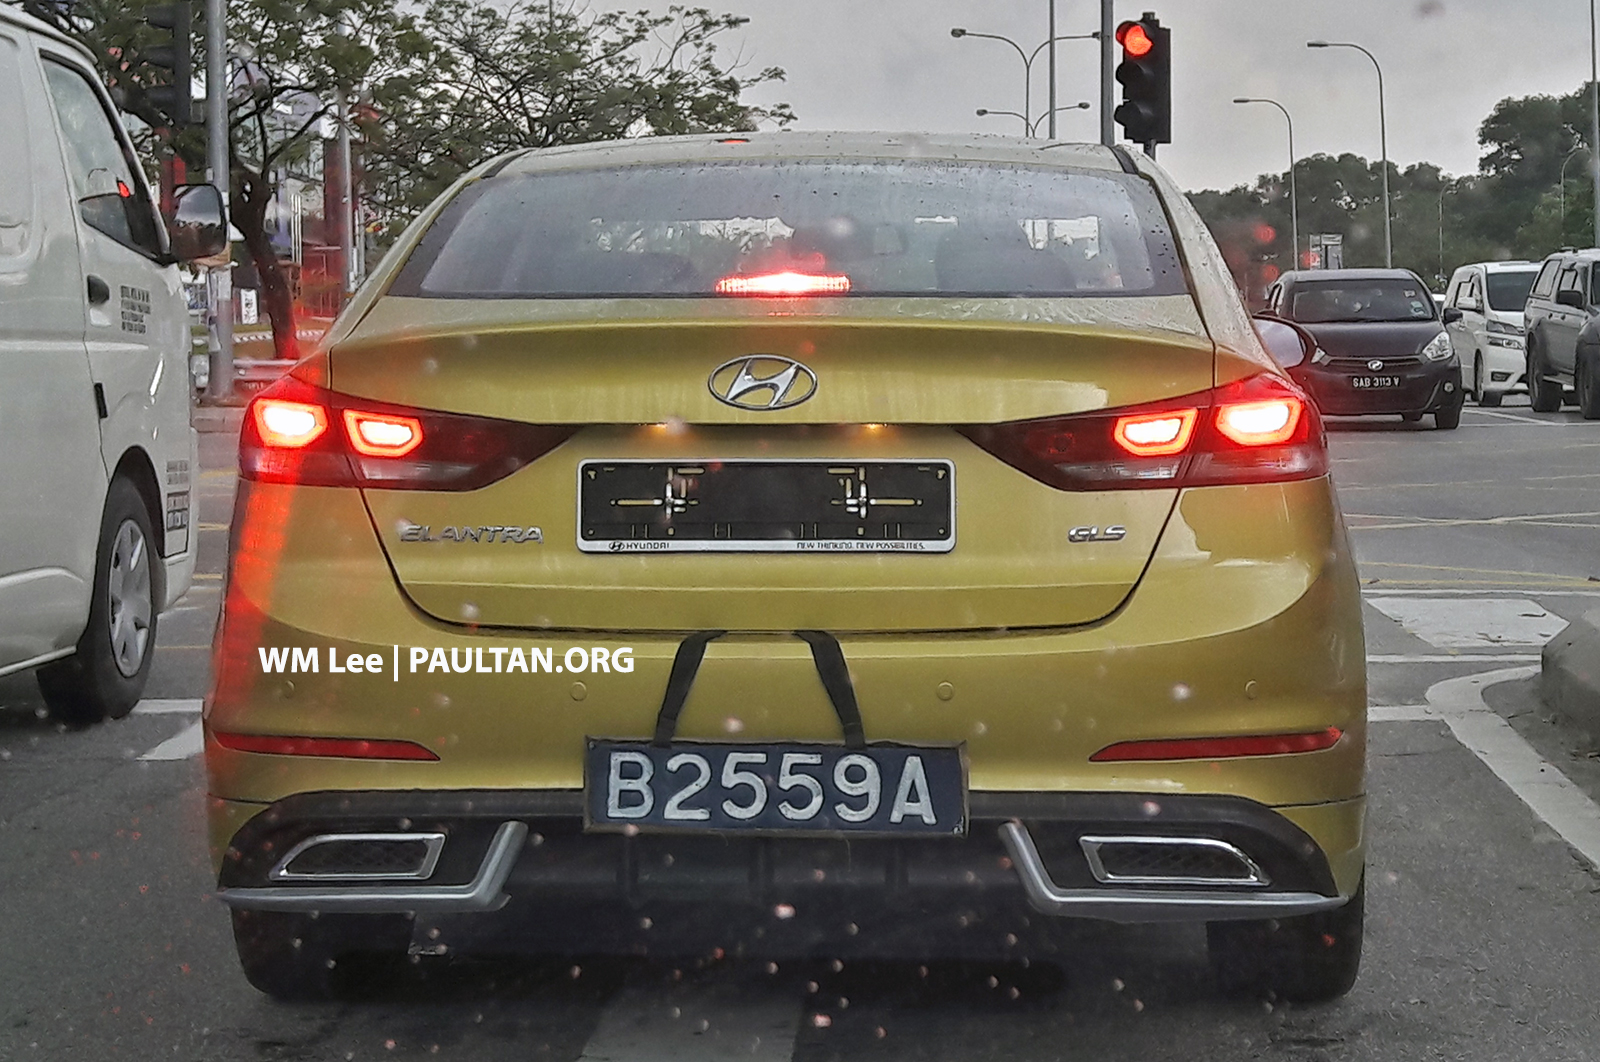 new hyundai elantra spotted non turbo with bodykit paul tan image 654721. Black Bedroom Furniture Sets. Home Design Ideas